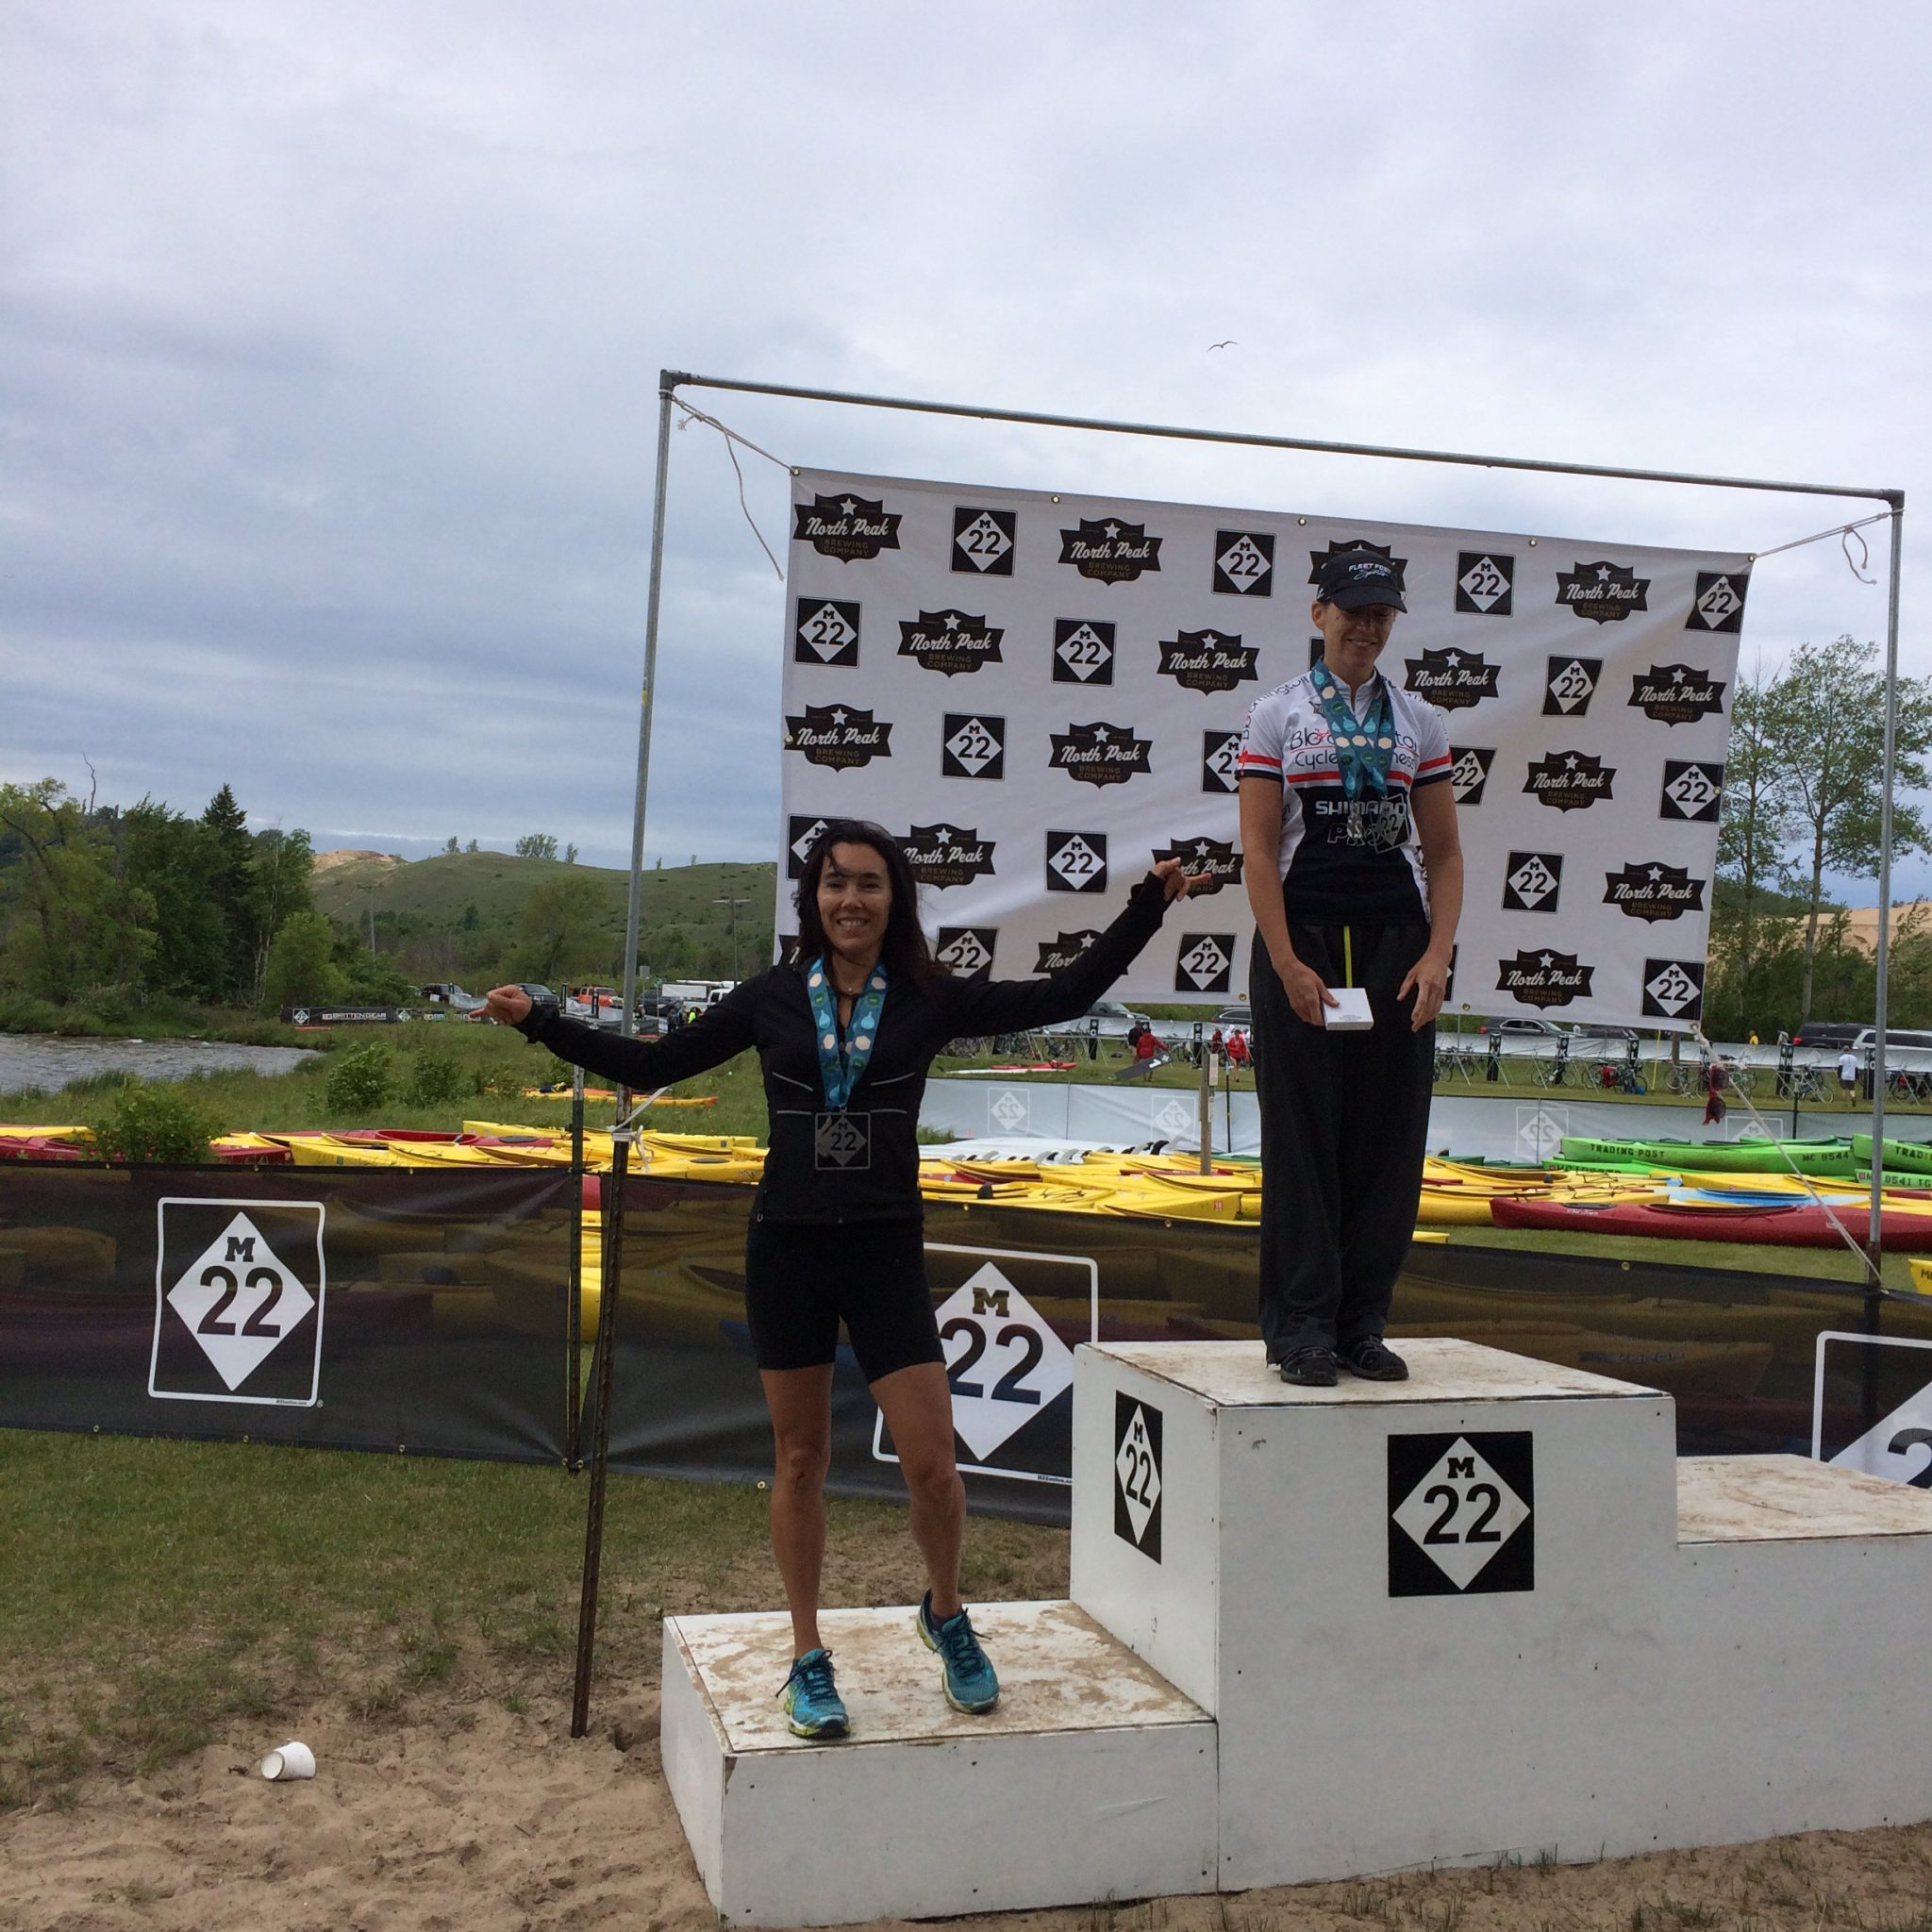 Jennifer on the podium -- she earned a third-place age-group winner award. Way to go, my friend!